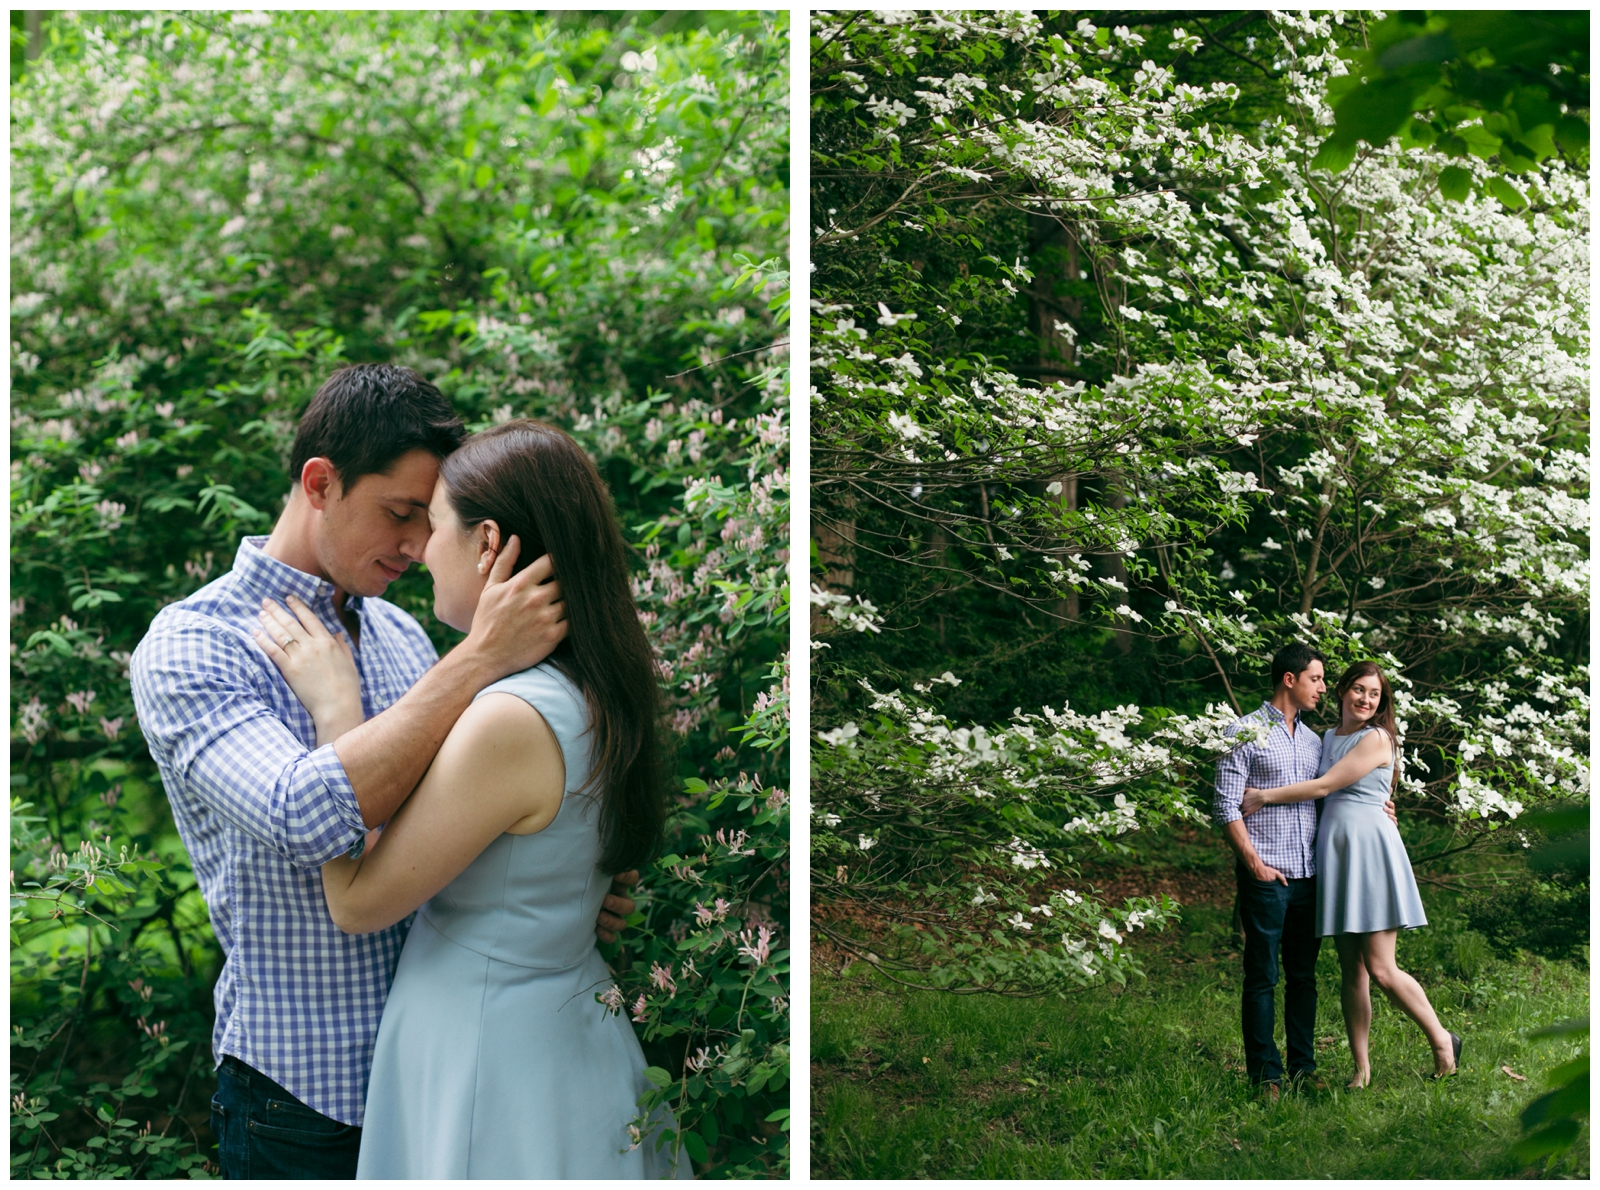 Arnold-Arboretum-Engagement-Boston-Wedding-Photographer-Bailey-Q-Photo-009.jpg